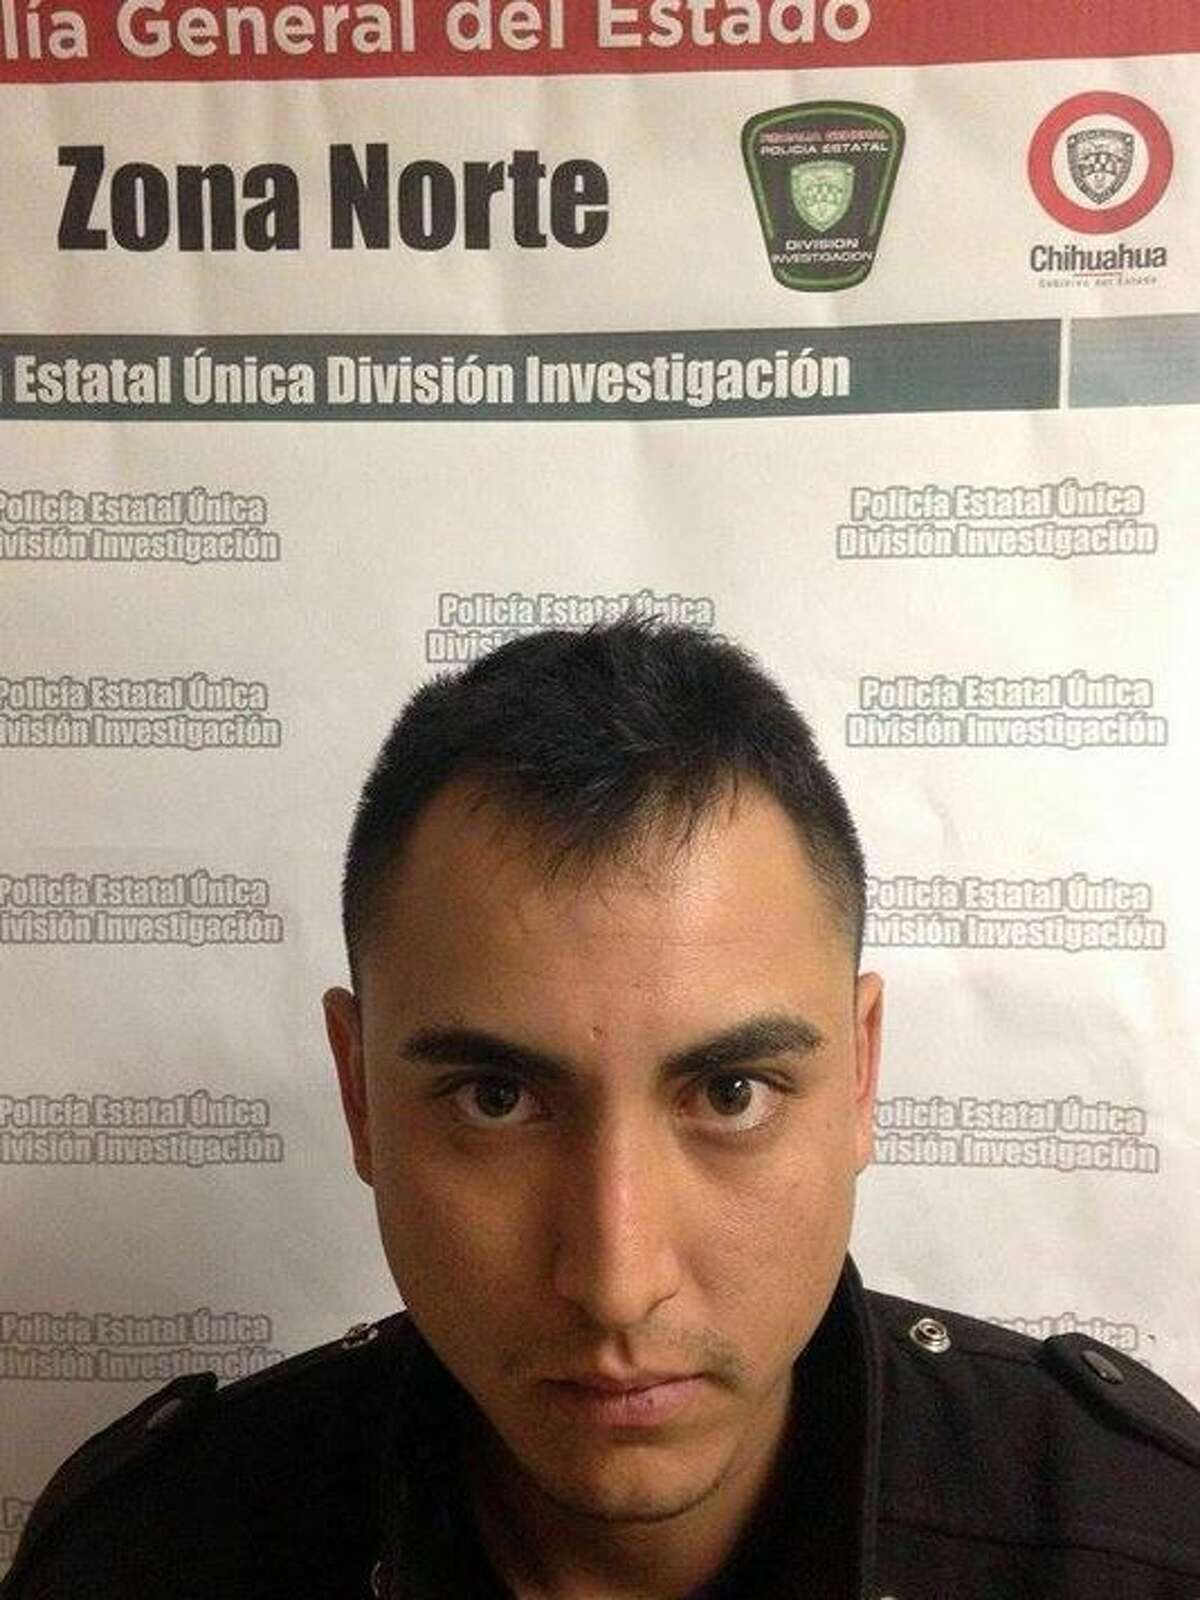 """Chihuahua state police arrested 23-year-old Cesar Contreras Orozco after officers allegedly found him in possession of drugs, according to the Chihuahua state attorney general's office. Orozco - known as """"El Cirujano,"""" or """"The Surgeon"""" - and an accomplice are accused of abducting and killing two men in El Porvenir, a town just across the U.S.-Mexico border from Fort Hancock."""